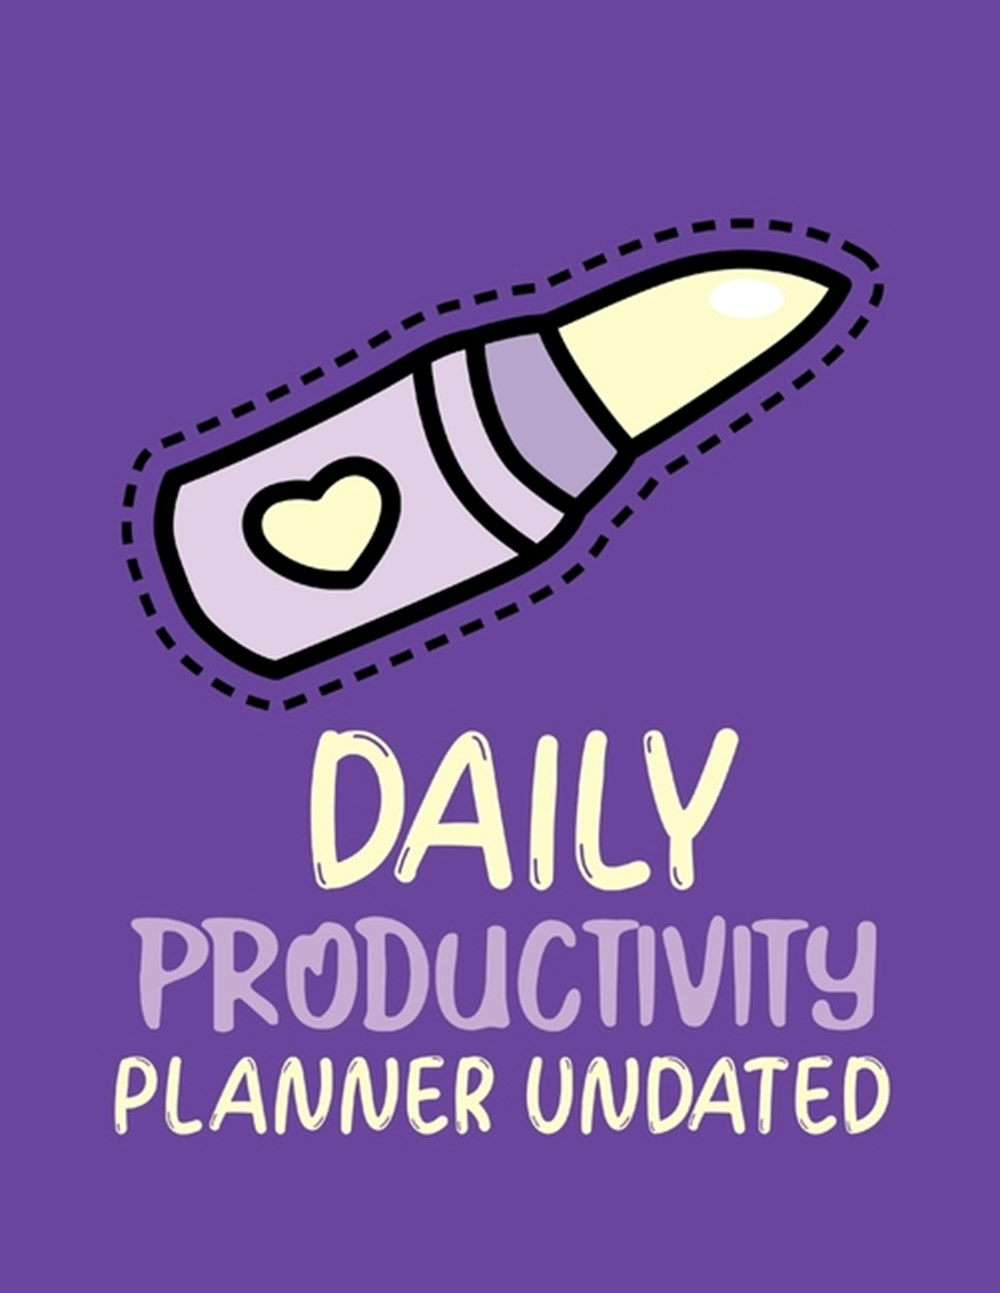 Daily Productivity Planner Undated Time Management Journal - Agenda Daily - Goal Setting - Weekly -